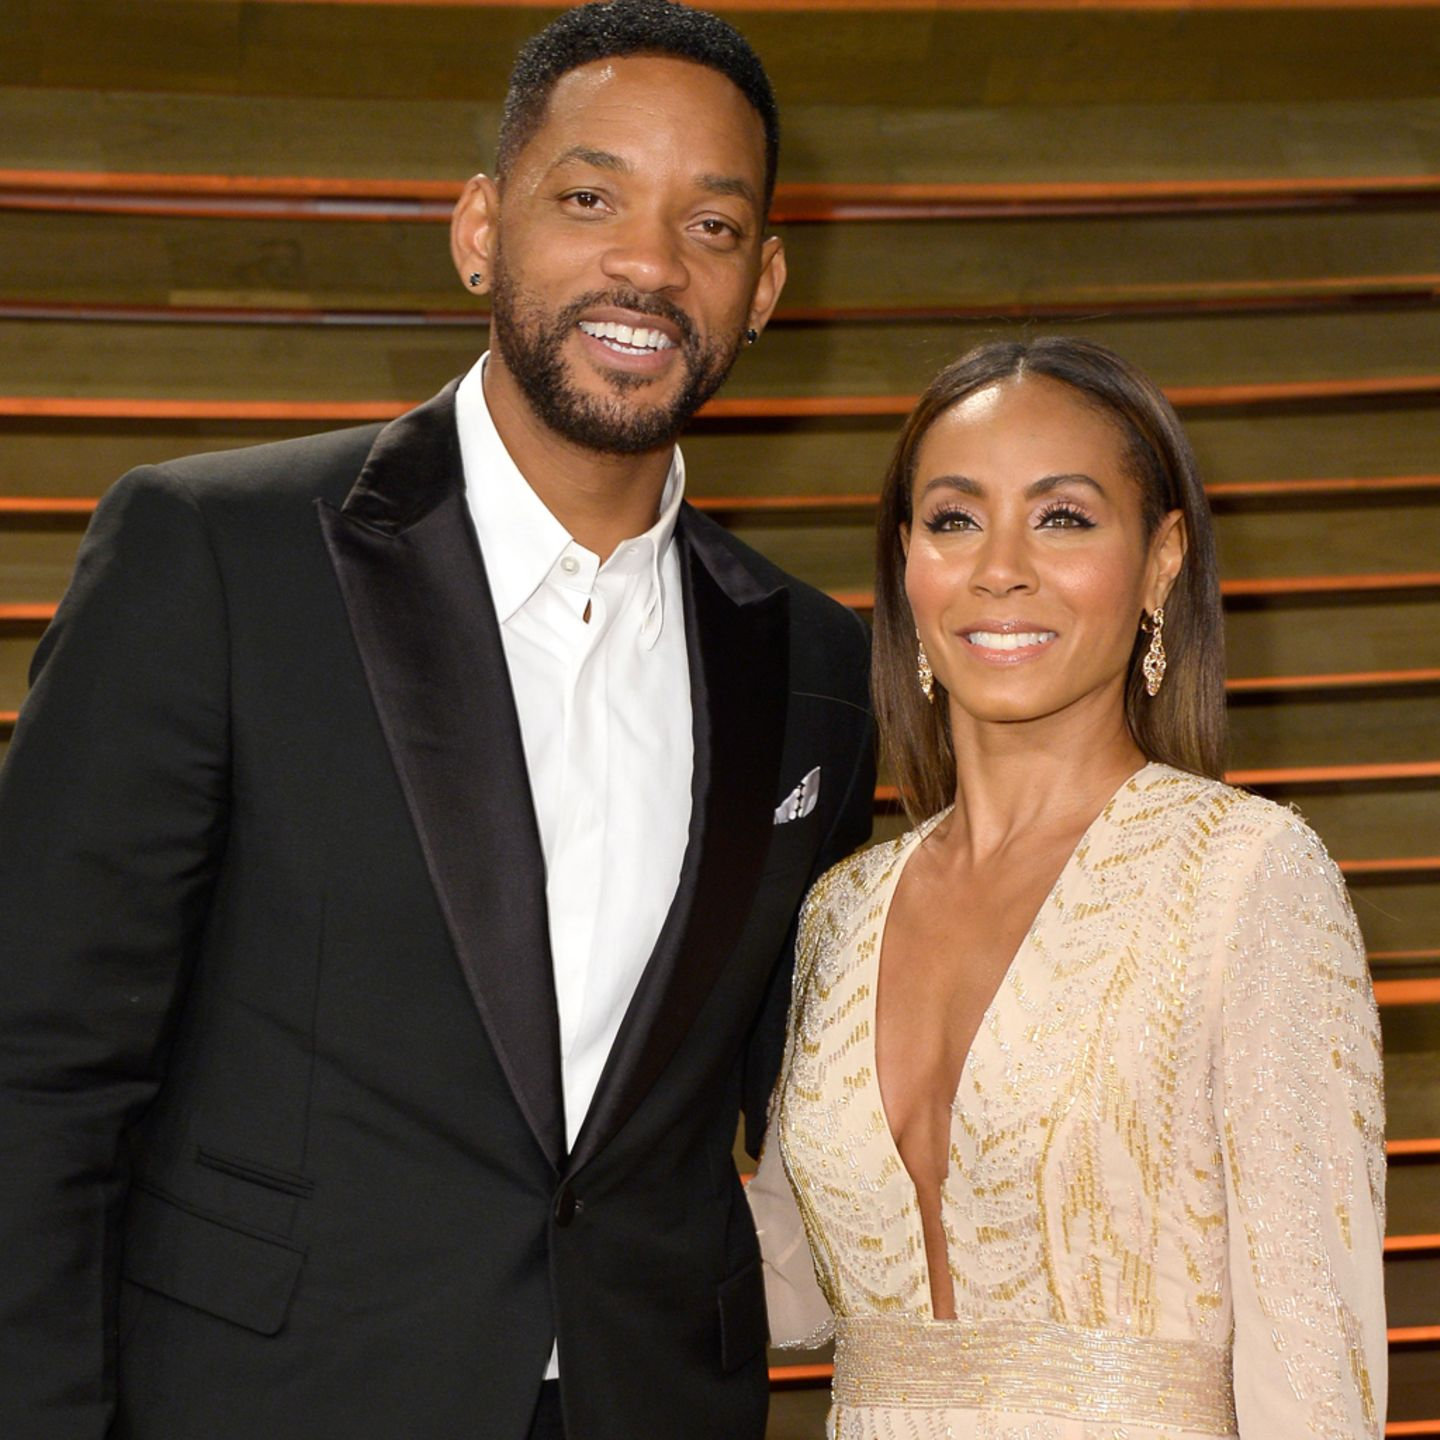 Will Smith + Jada Pinkett Smith